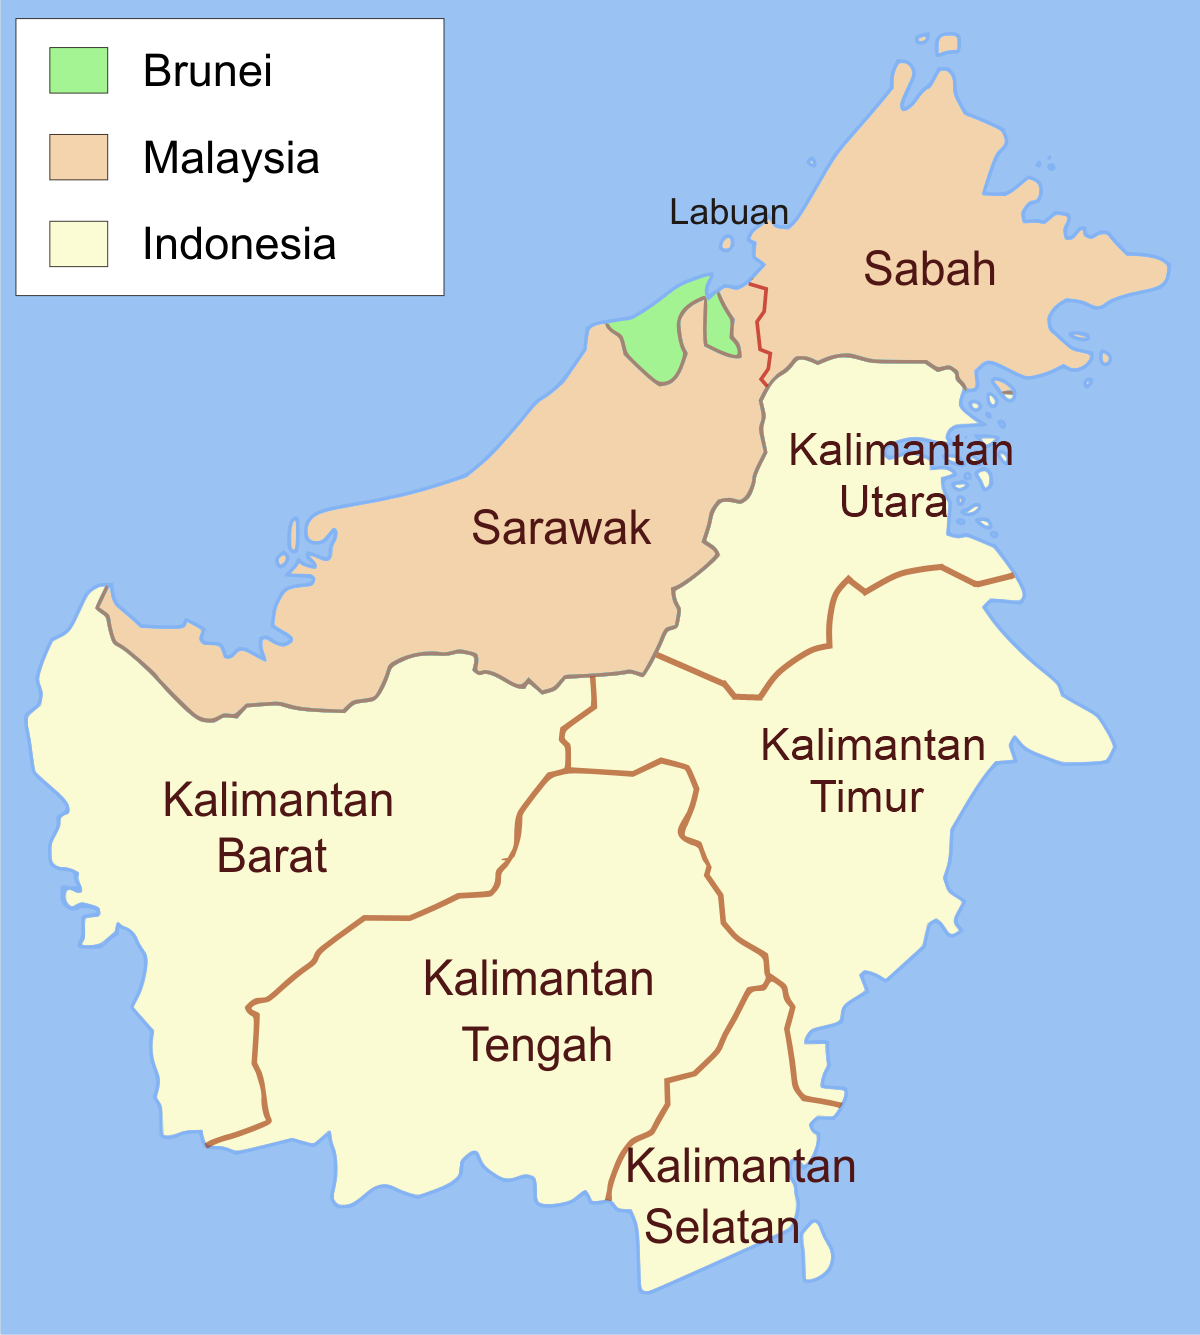 file administrative map of borneo indonesian png wikimedia commons https commons wikimedia org wiki file administrative map of borneo indonesian png